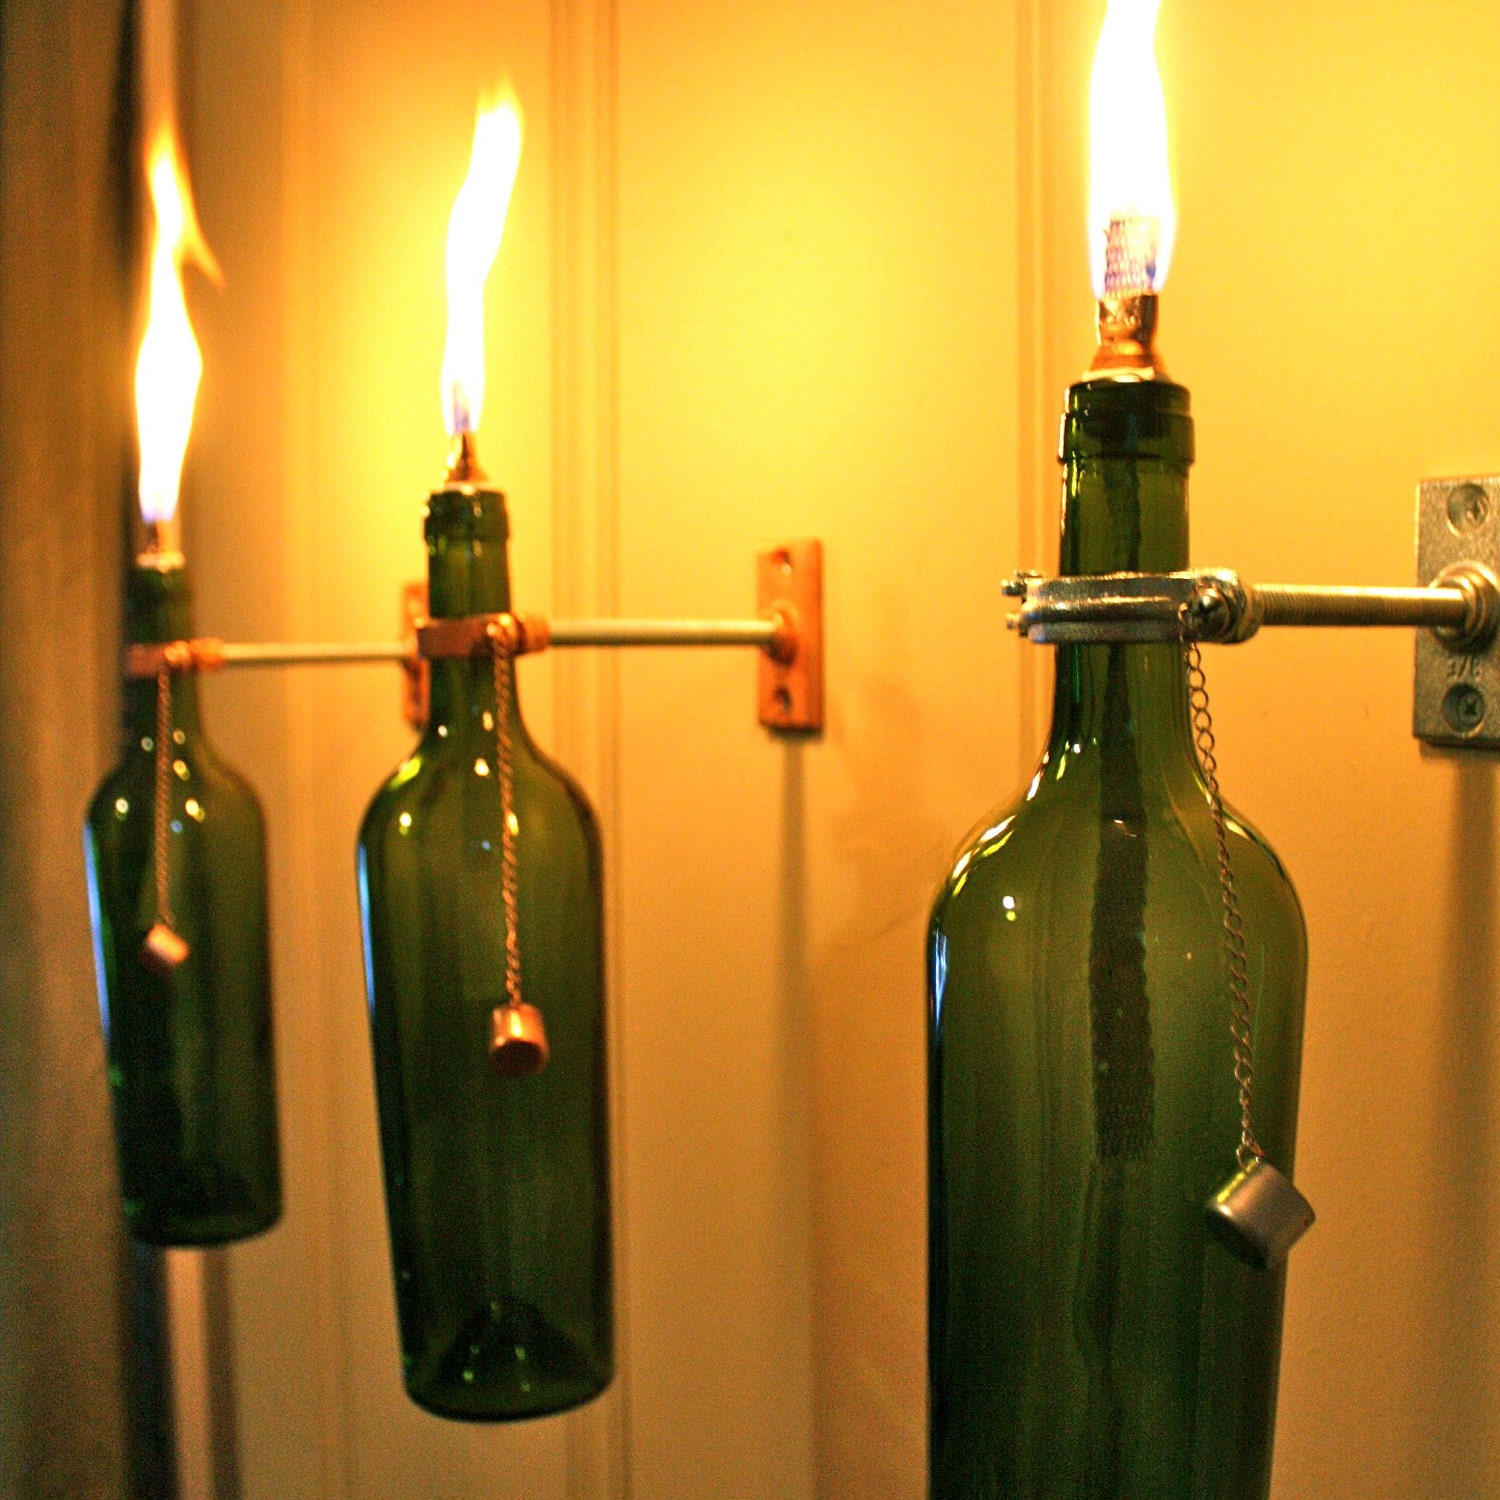 Wall Hurricane Lamps : 4 Wine Bottle Oil Lamps INDOOR Hurricane Lantern wall